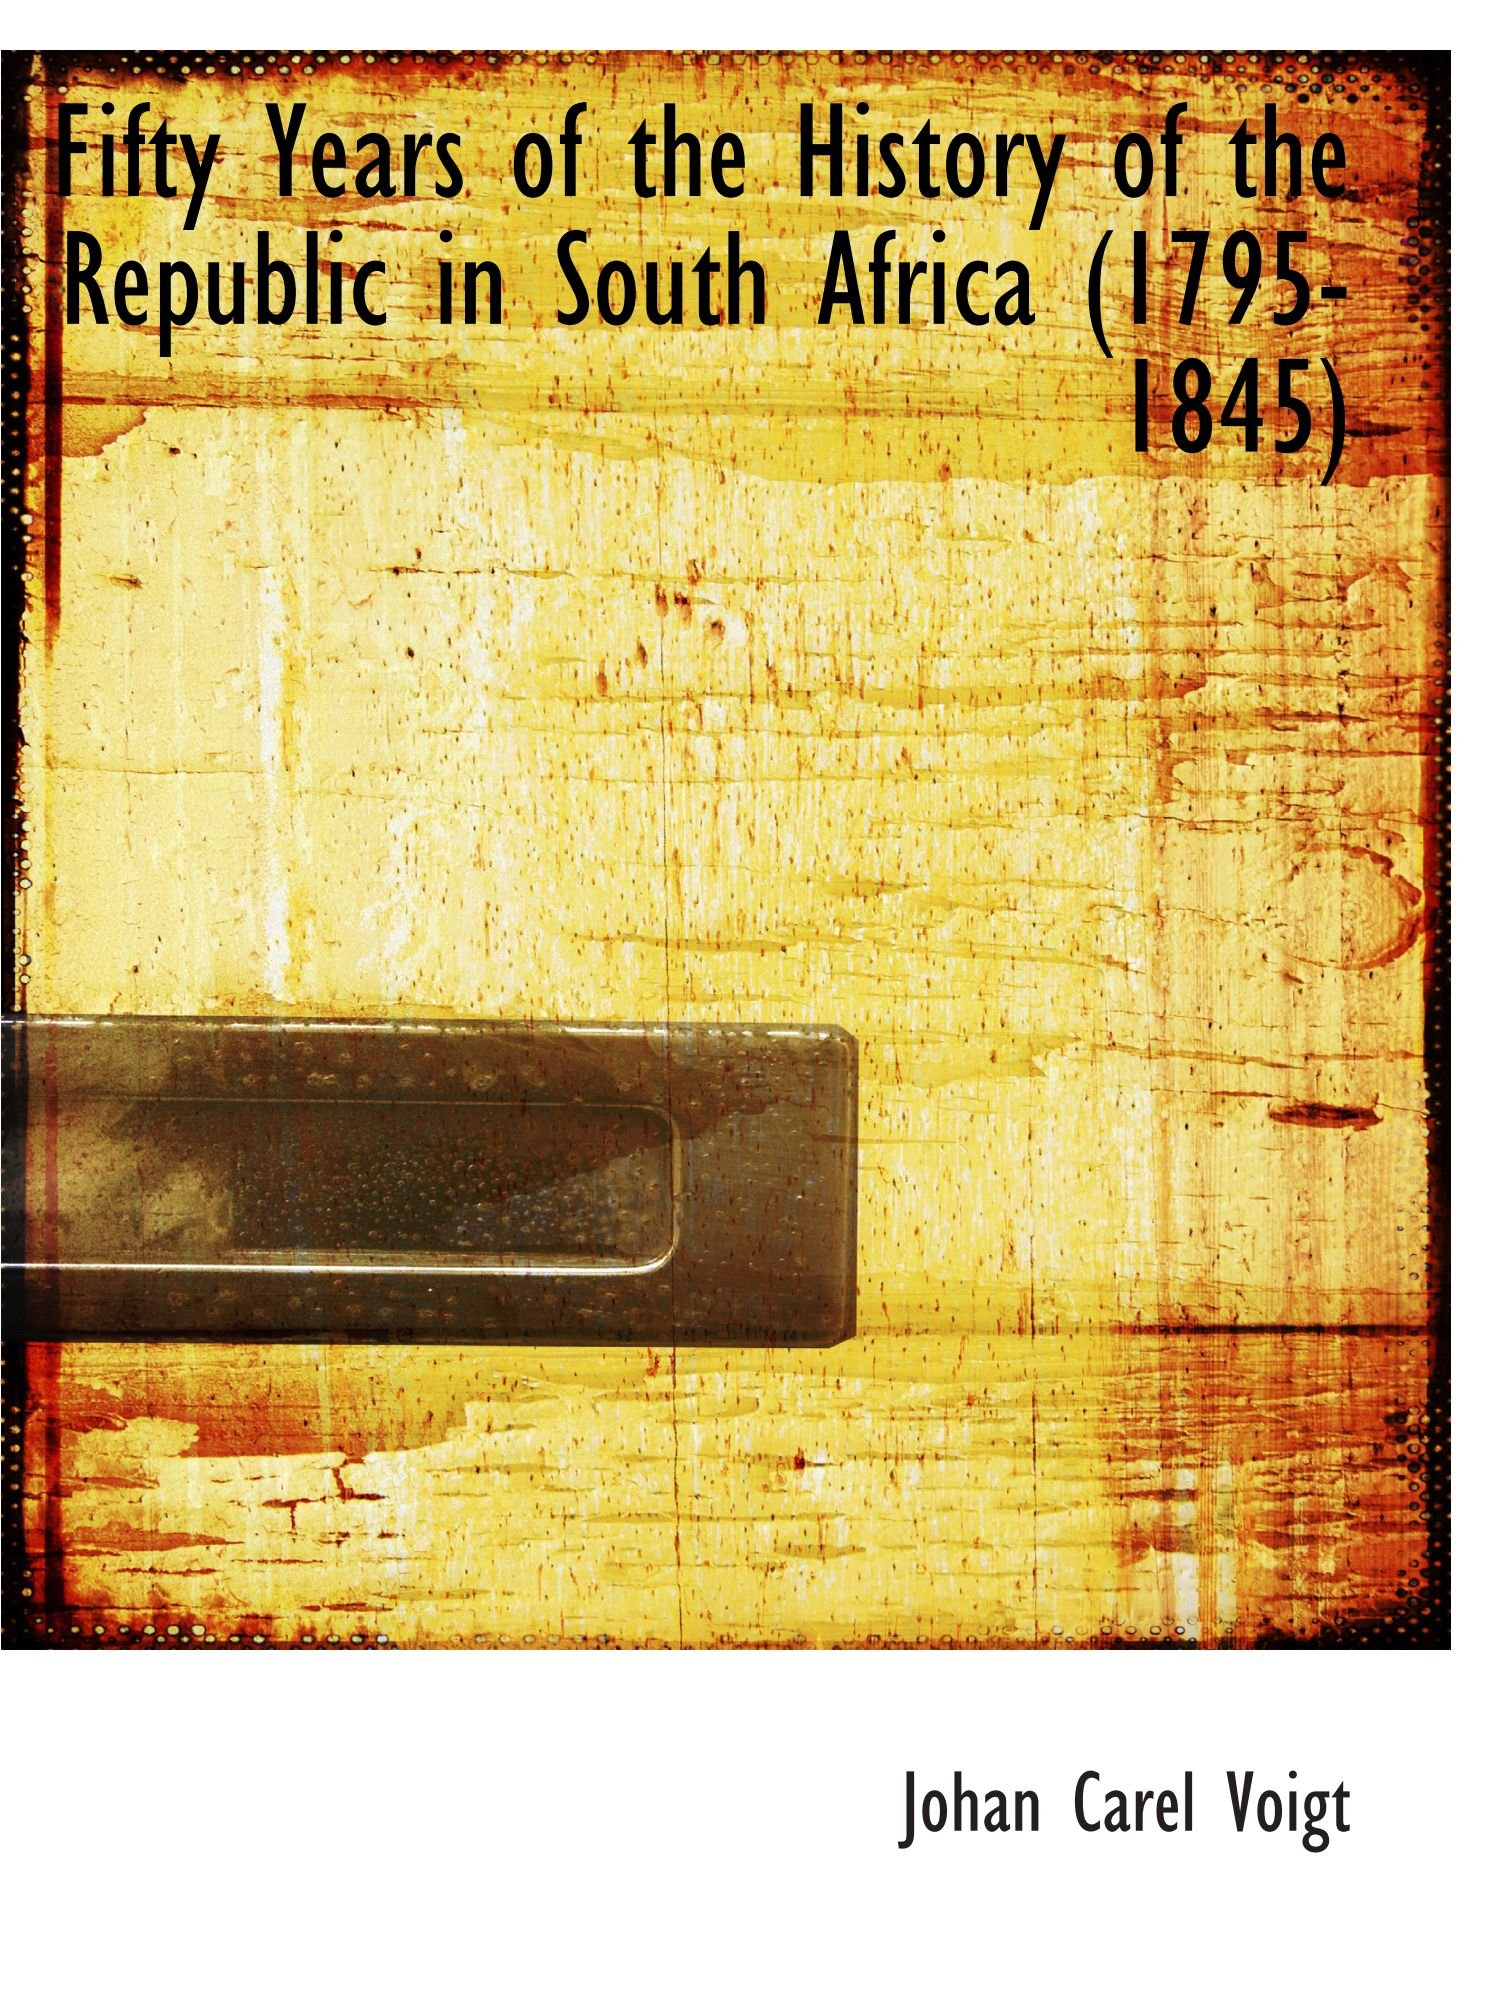 Download Fifty Years of the History of the Republic in South Africa (1795-1845) PDF